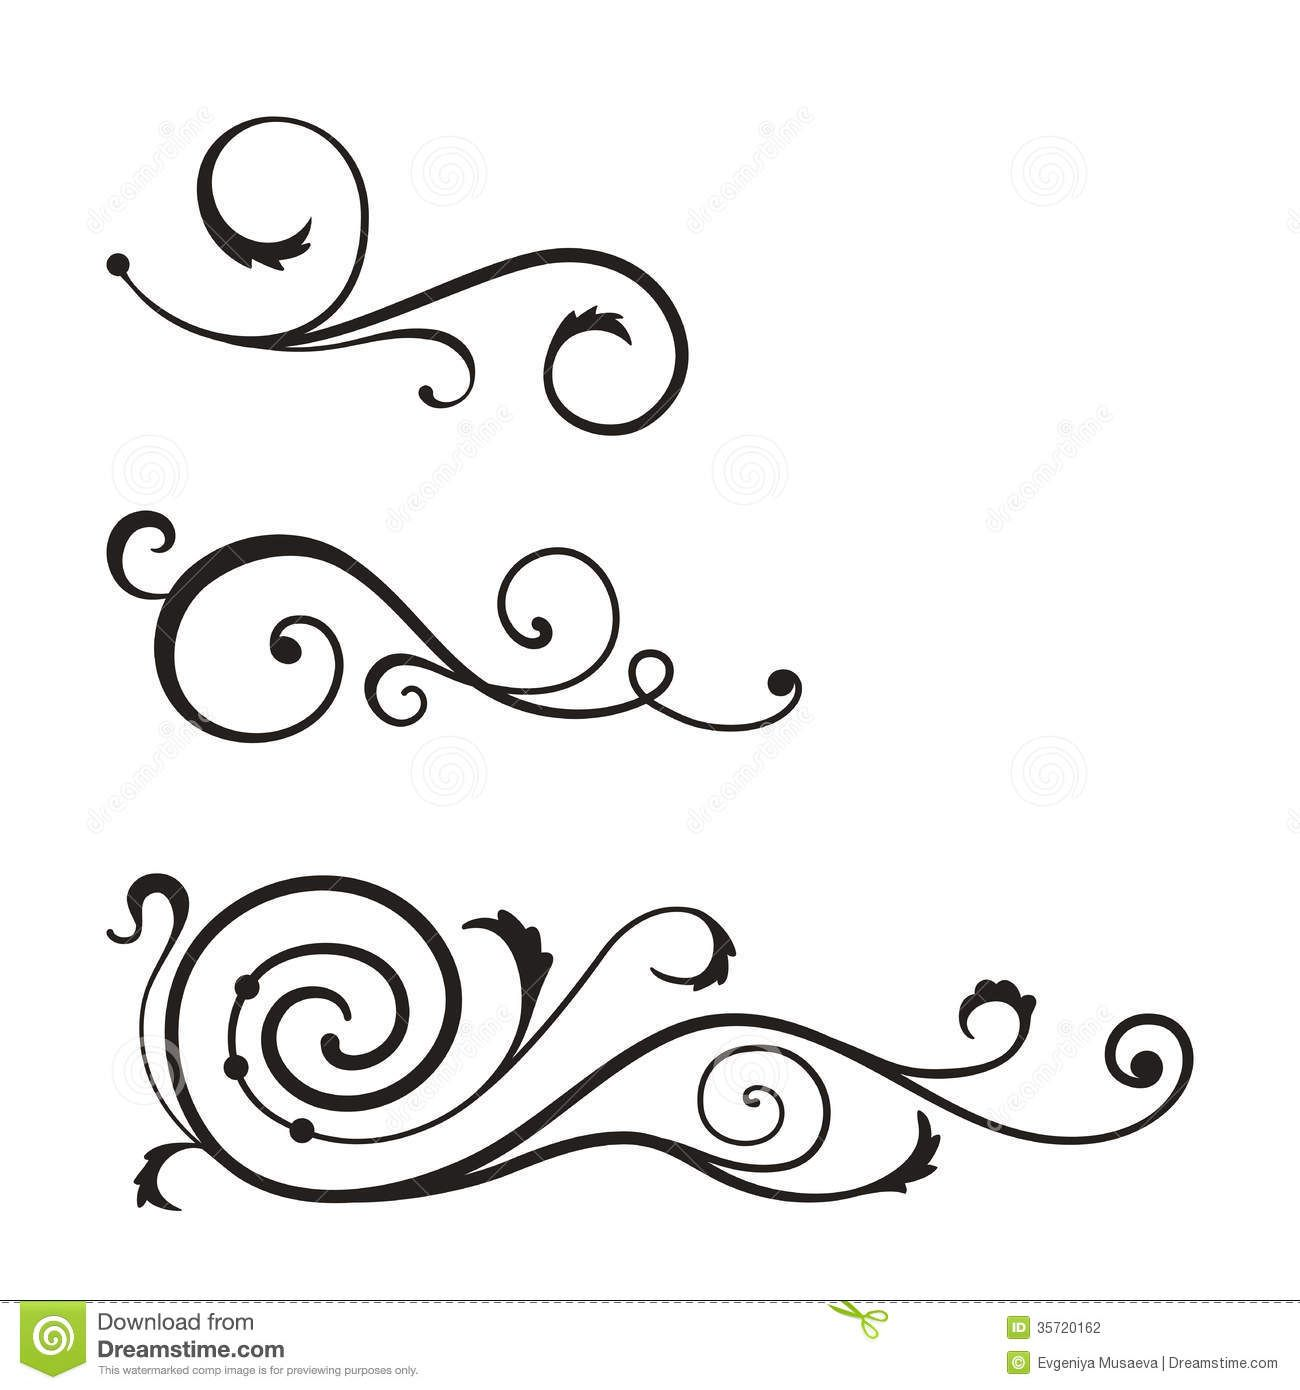 Basic Line Designs : Swirl elements design vector g